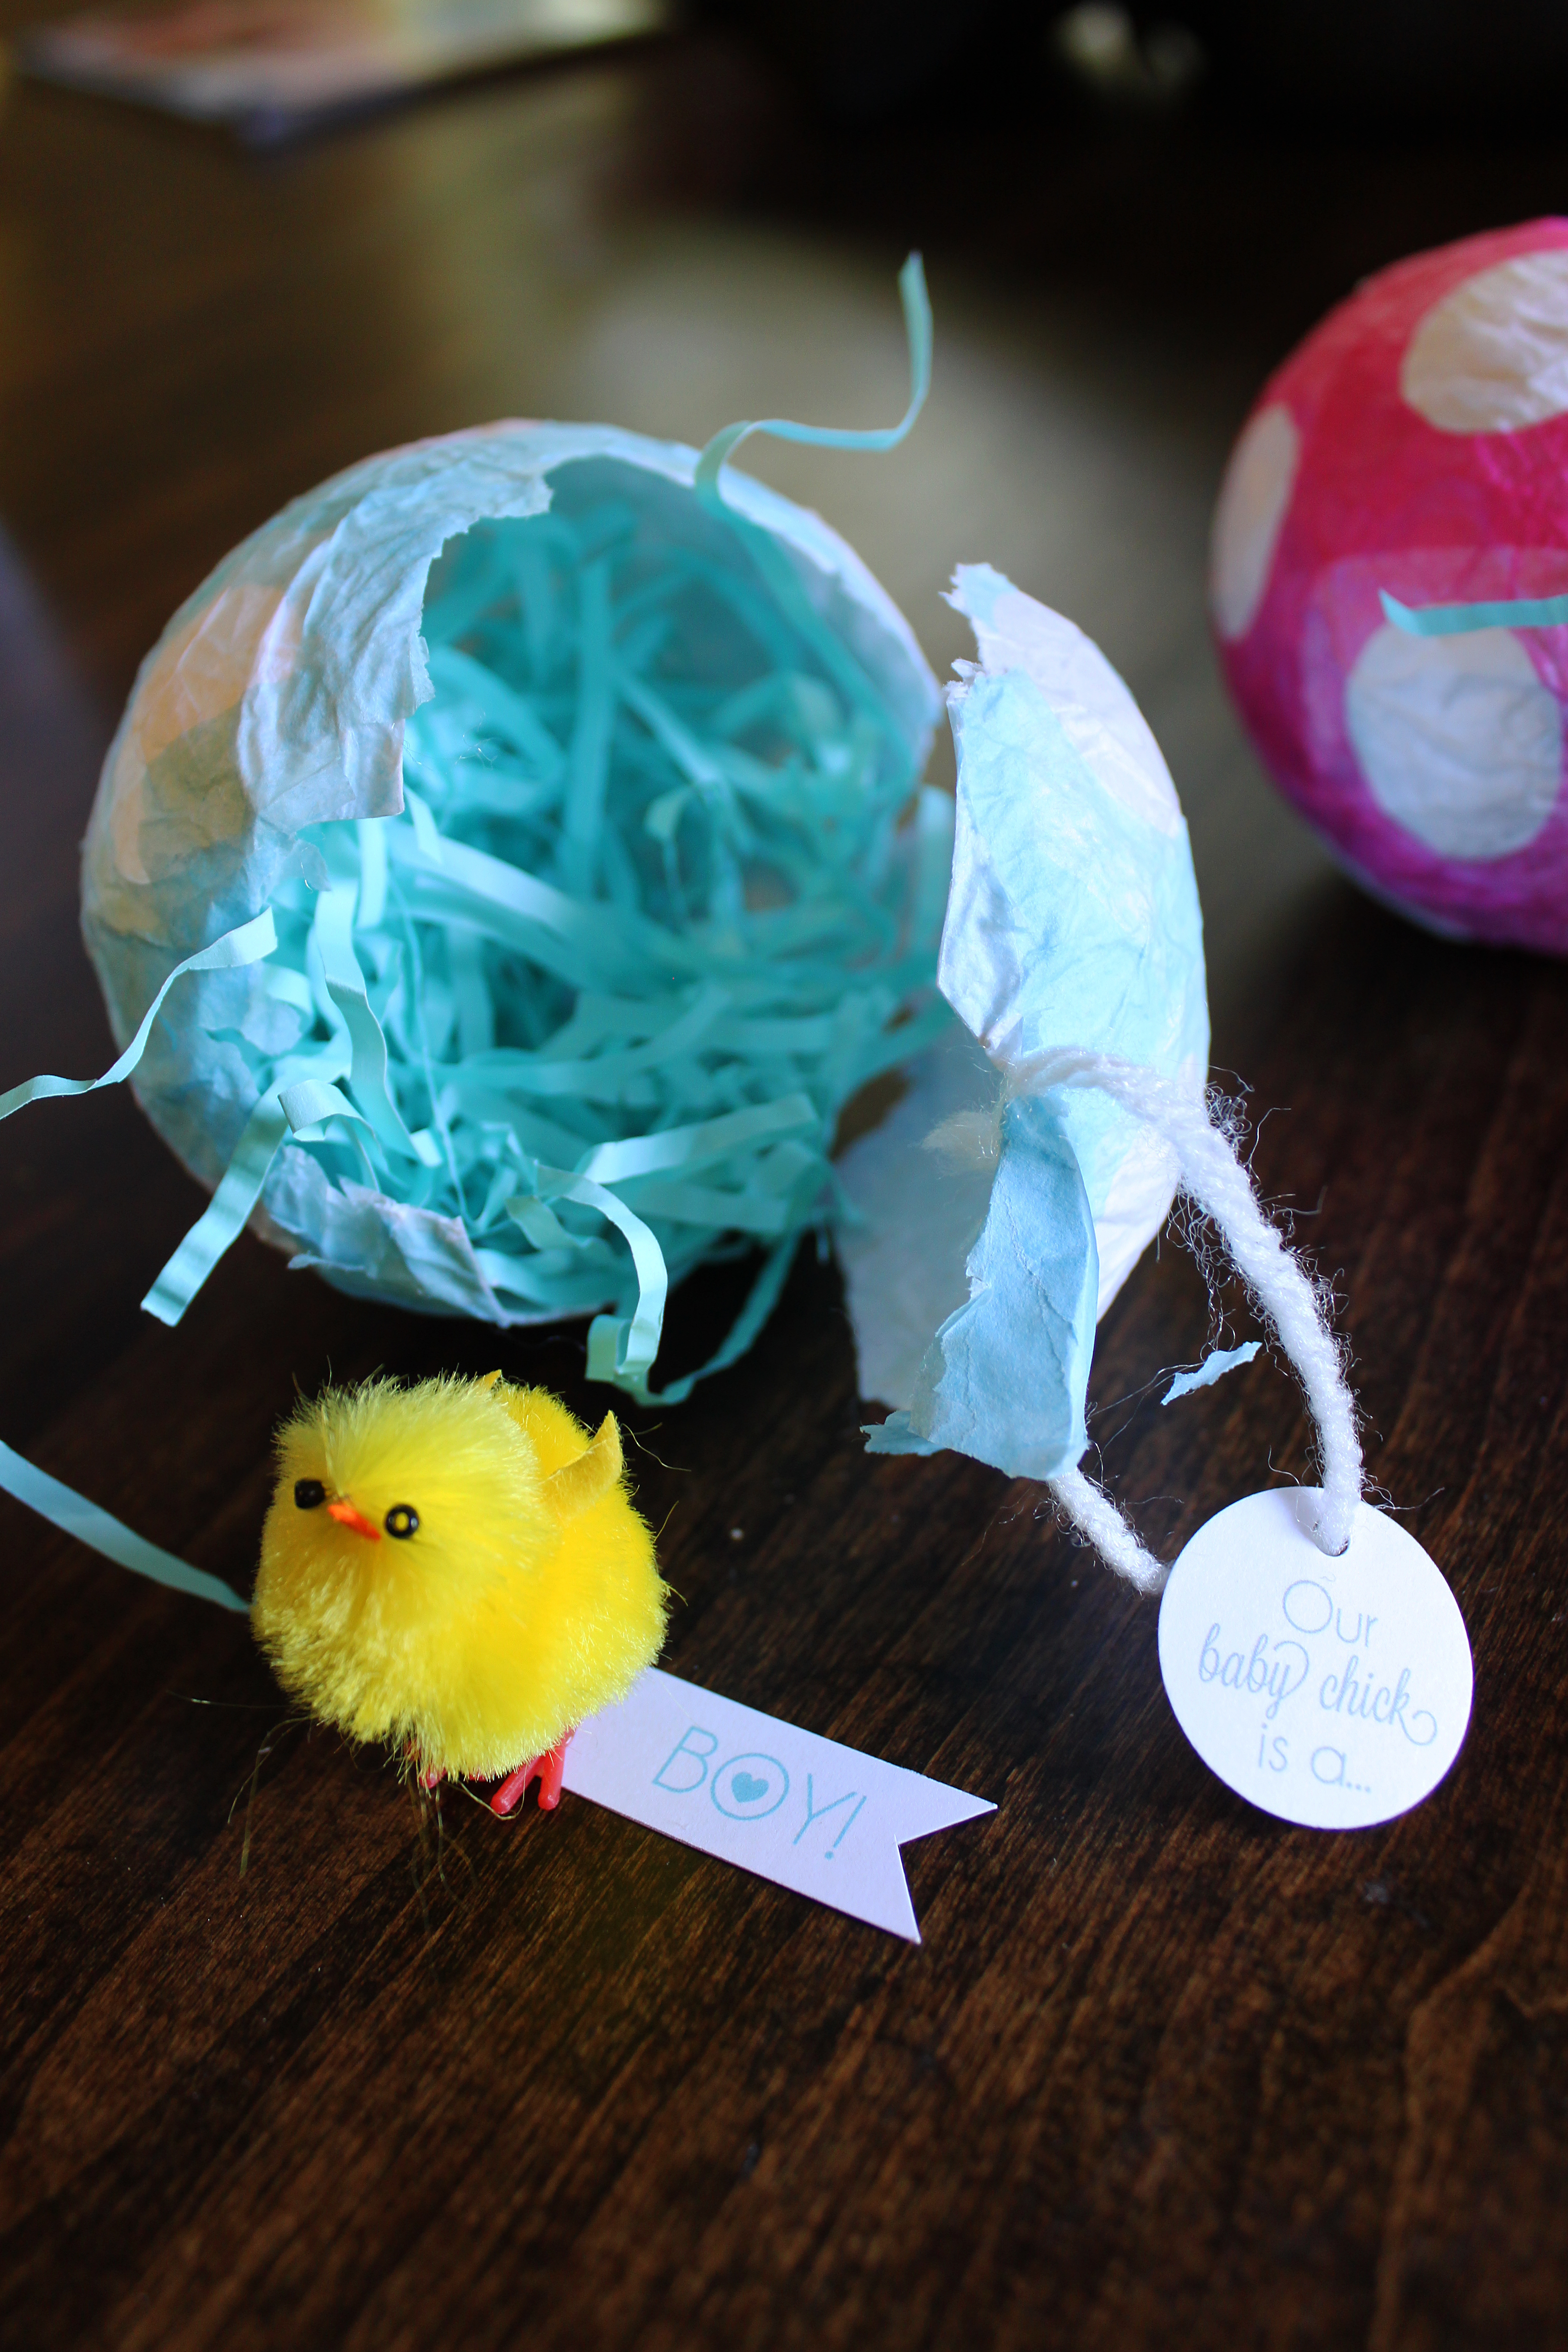 If your idea of a good egg is one with candy inside, then this is your month. Find our list of eggs-cellent easter egg hunts for kids here.